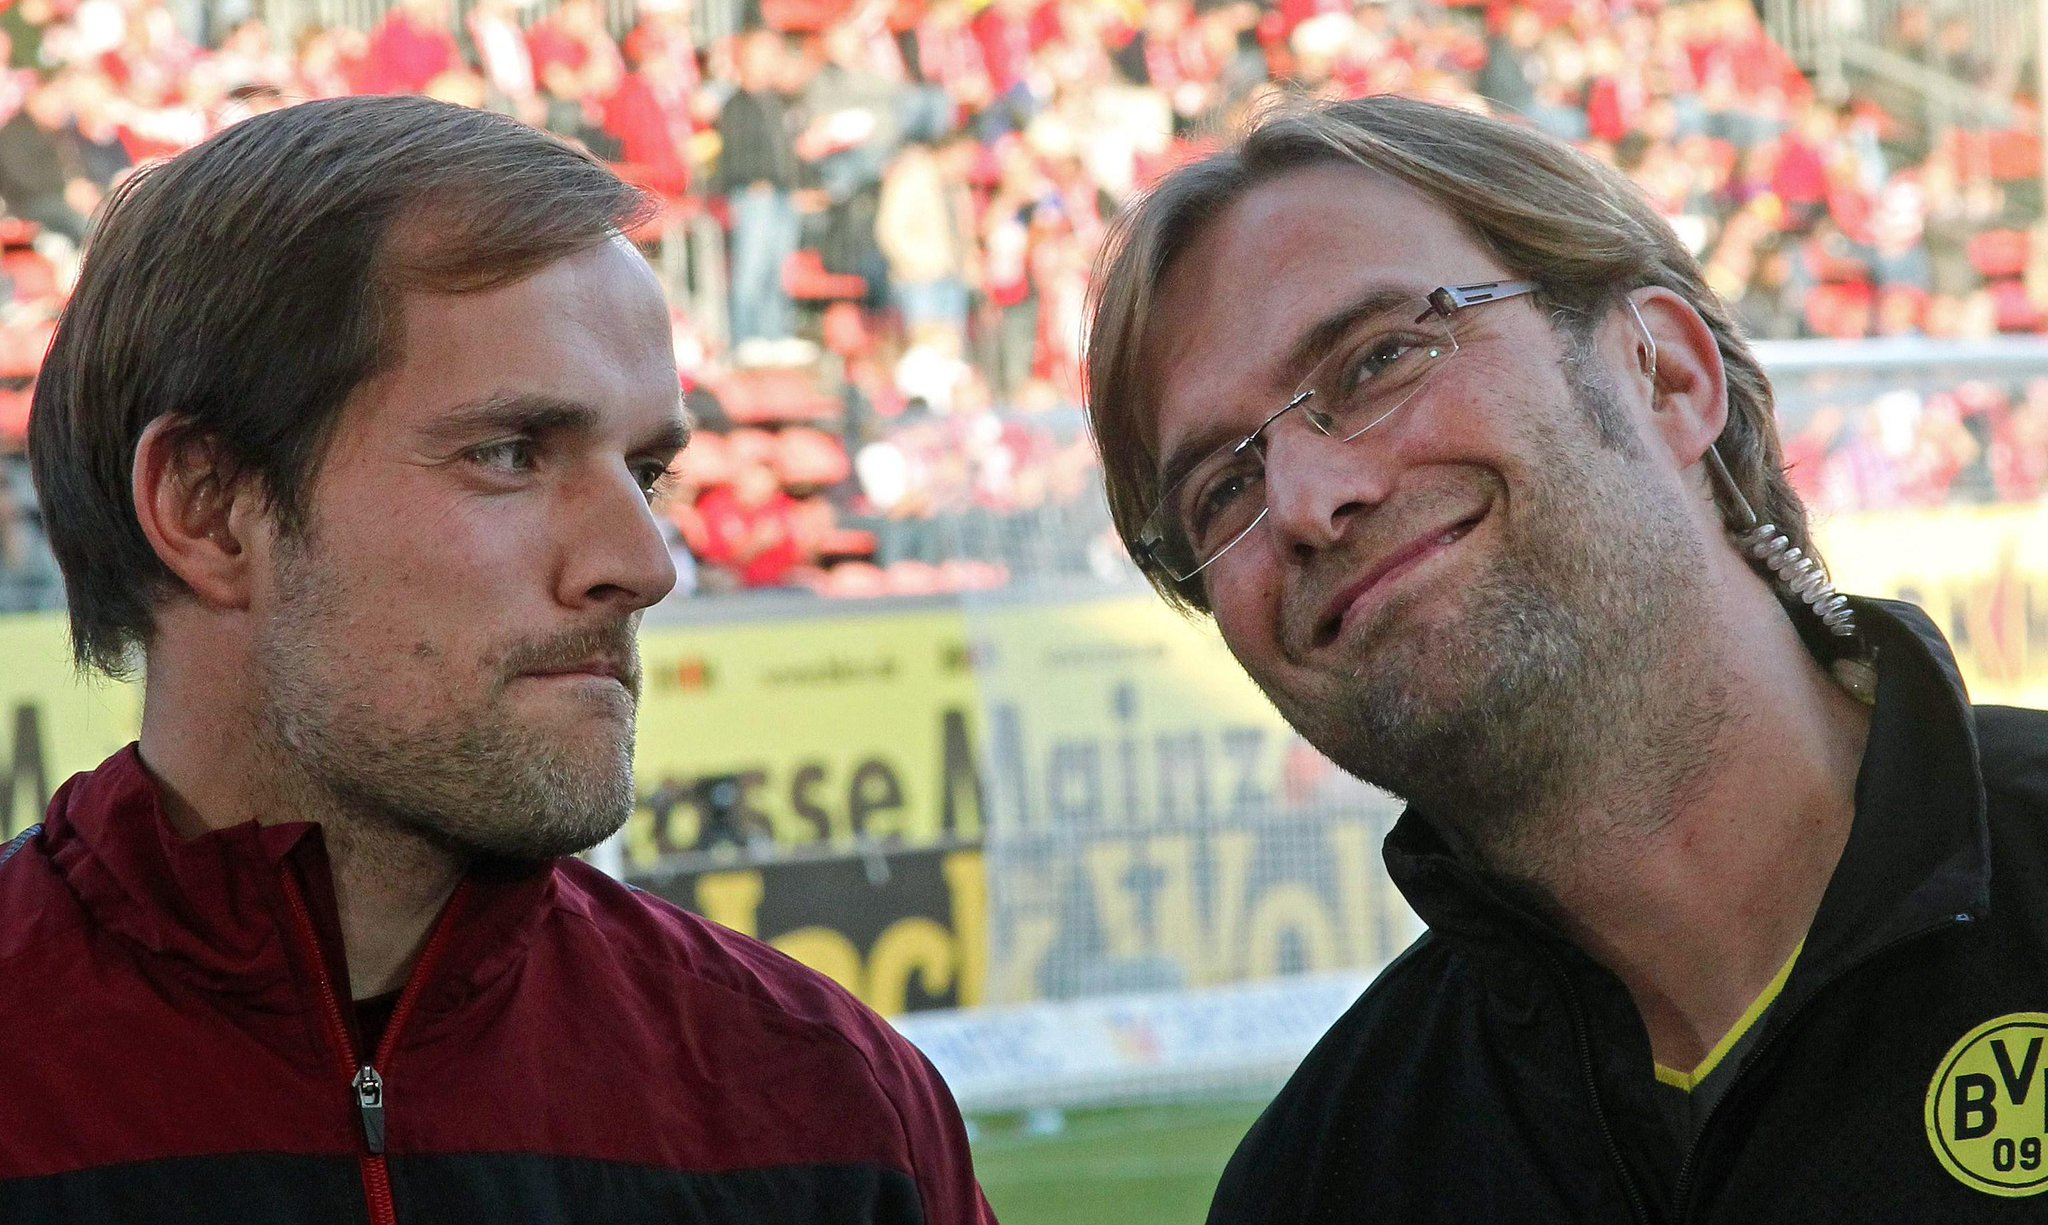 Feel the love! Meet Borussia Dortmund's current and future managers | http://t.co/tfweccte4H